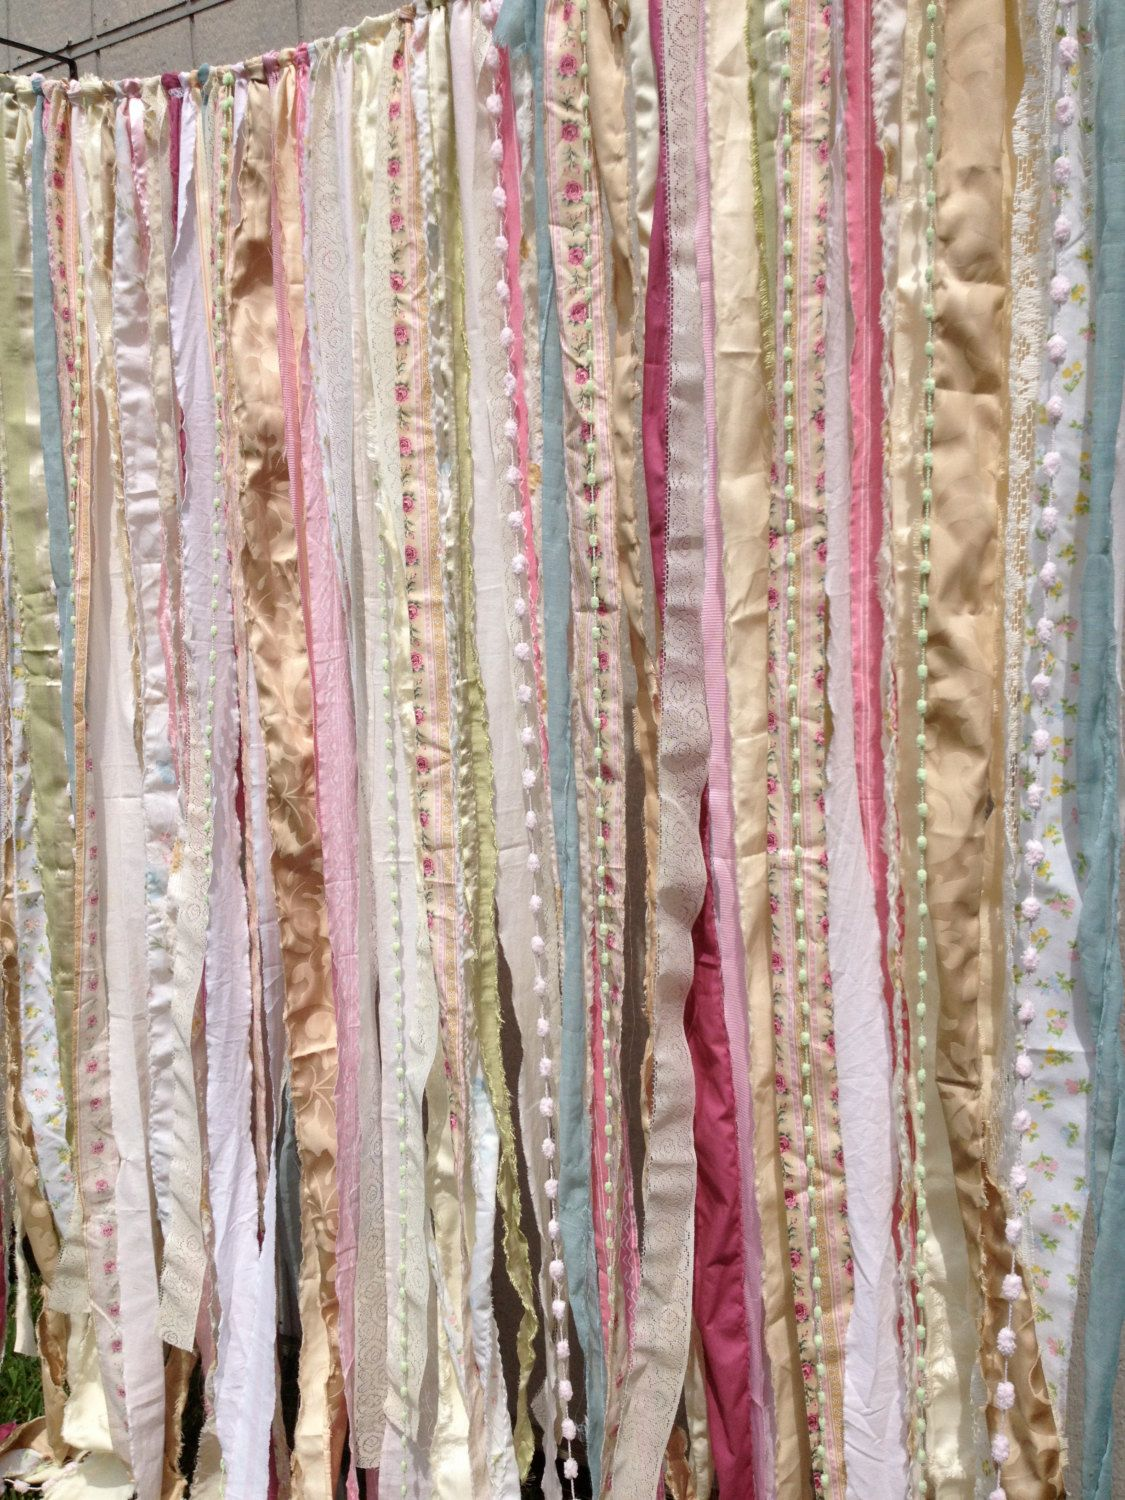 Shabby Rustic Chic Boho Fabric Garland Backdrop By OhMYcharley 9900 CurtainsShabby Shower